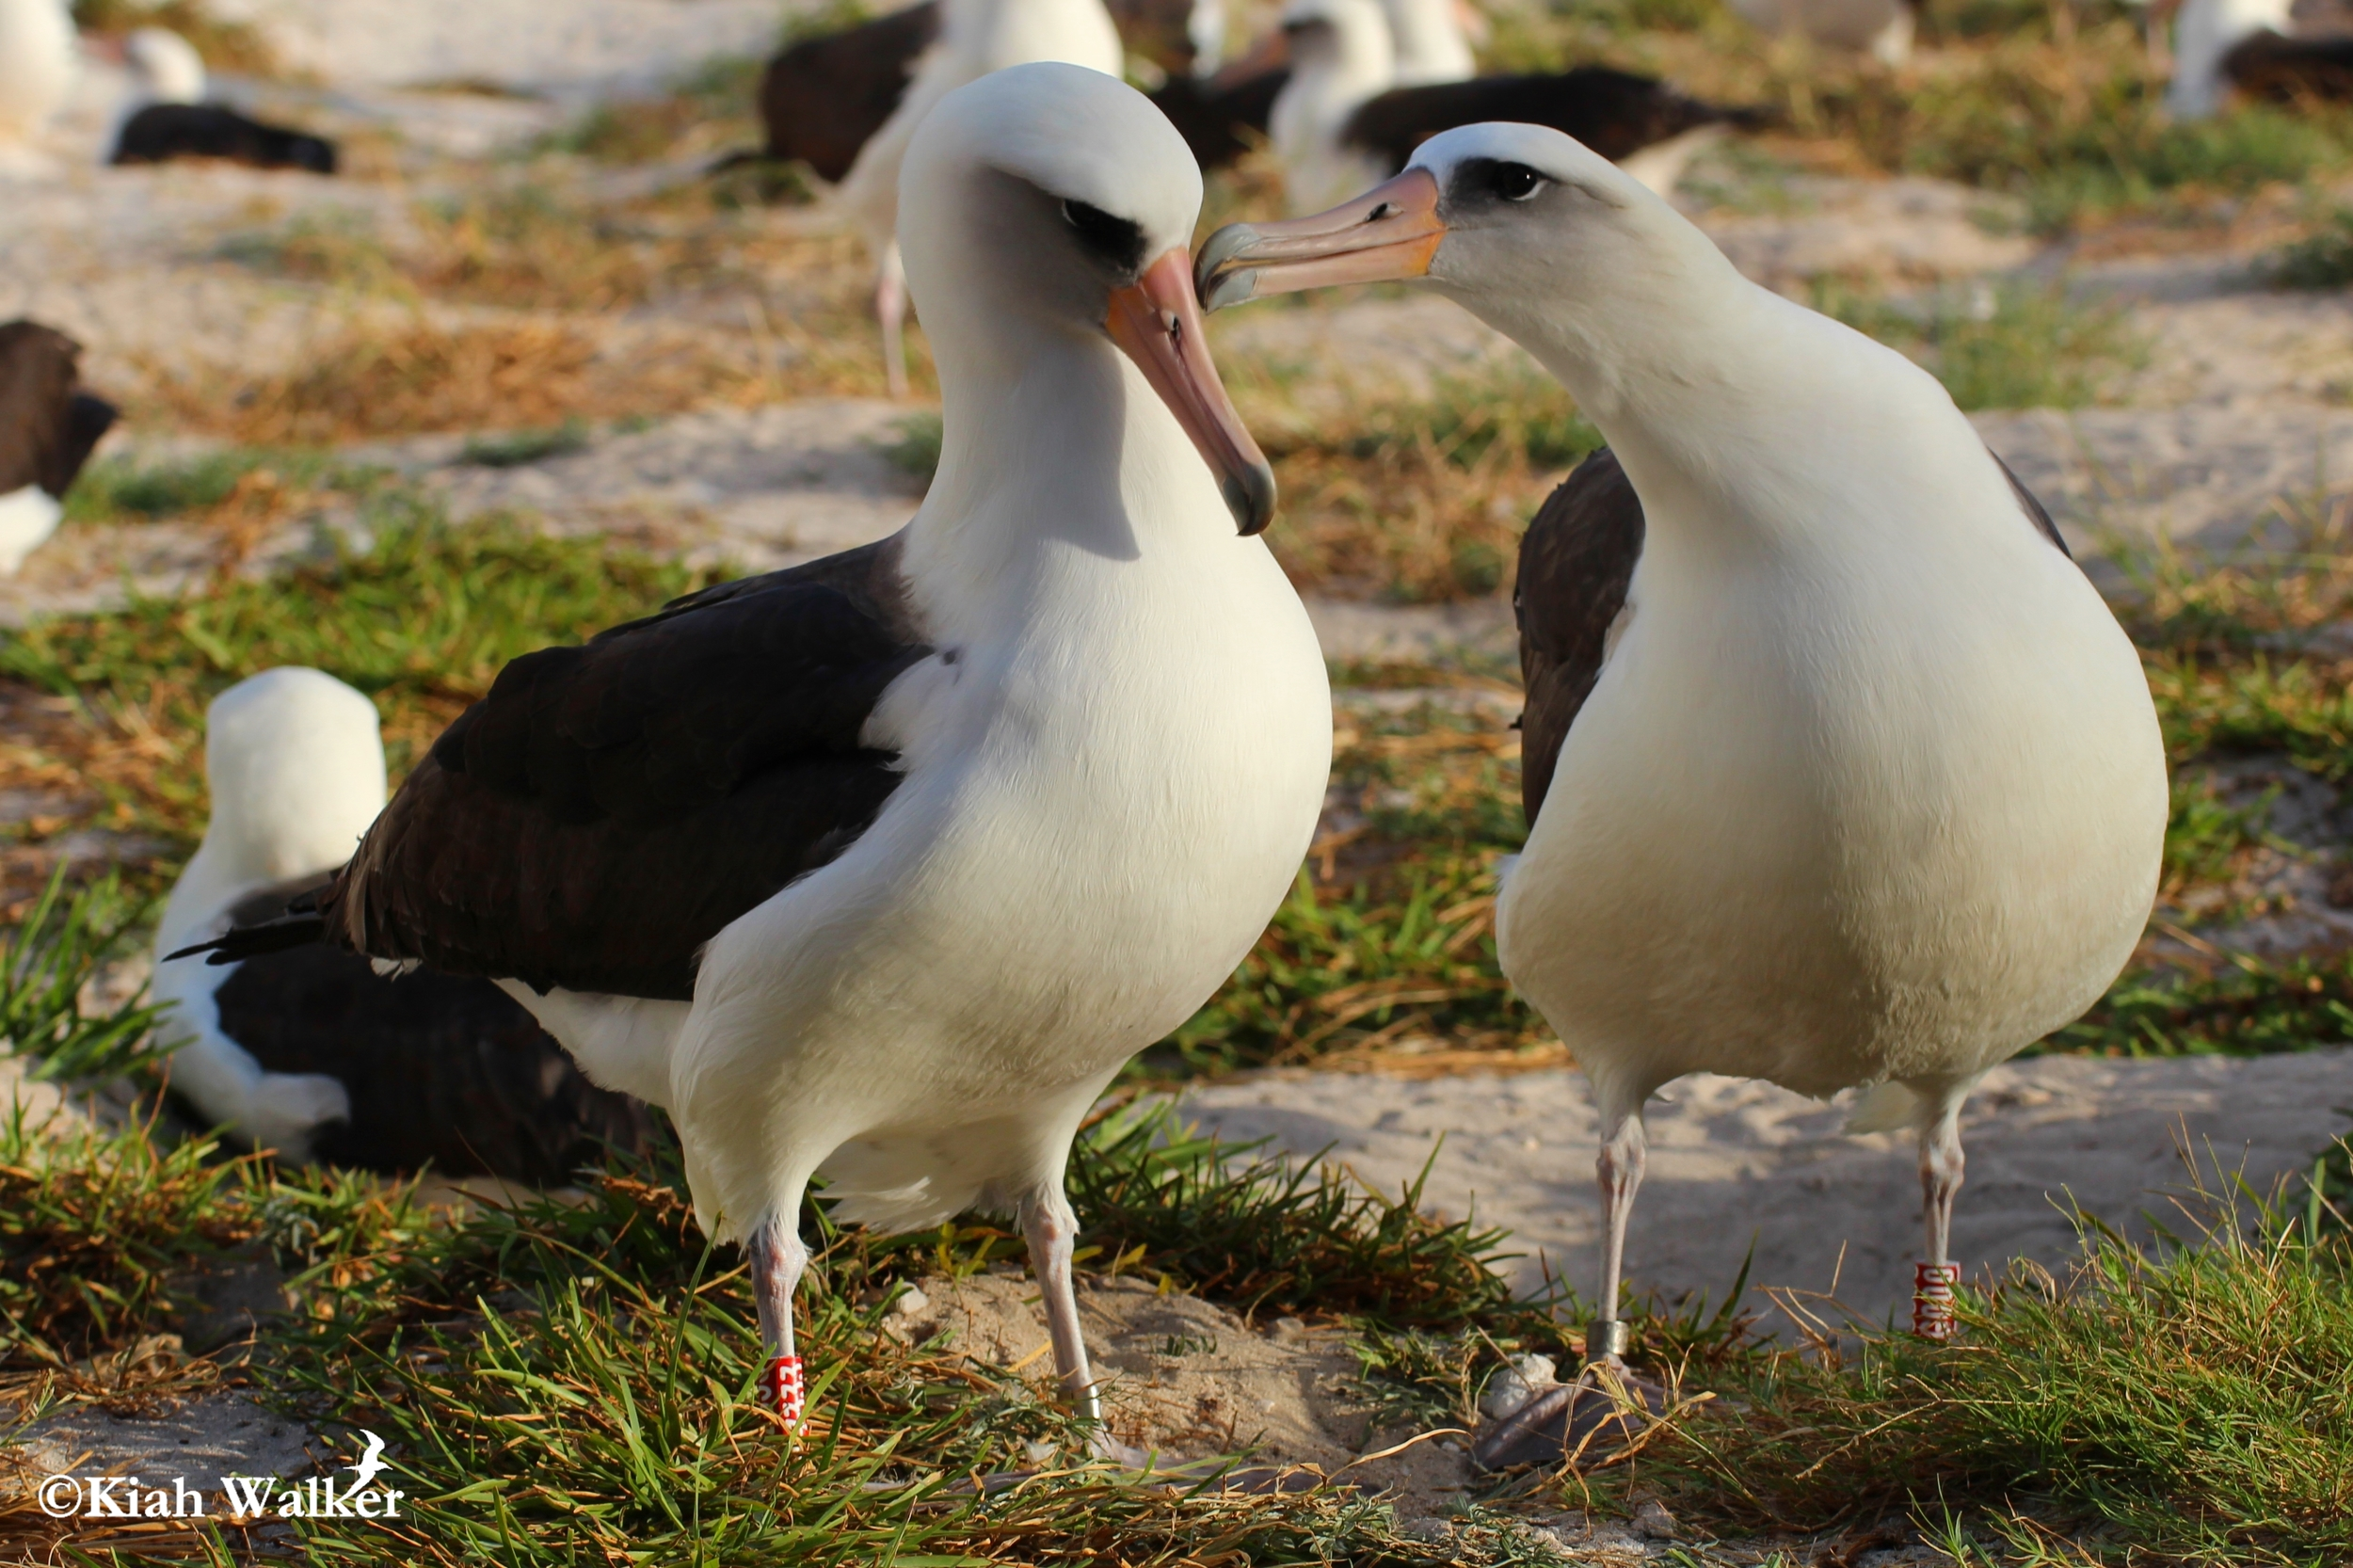 Wisdom (left) getting preened by her mate. Wisdom is a Laysan albatross ( Phoebastria immutabilis ) and the oldest known wild bird in the world at a minimum age of 65. Image featured on nationalgeographic.com and by numerous other news outlets.